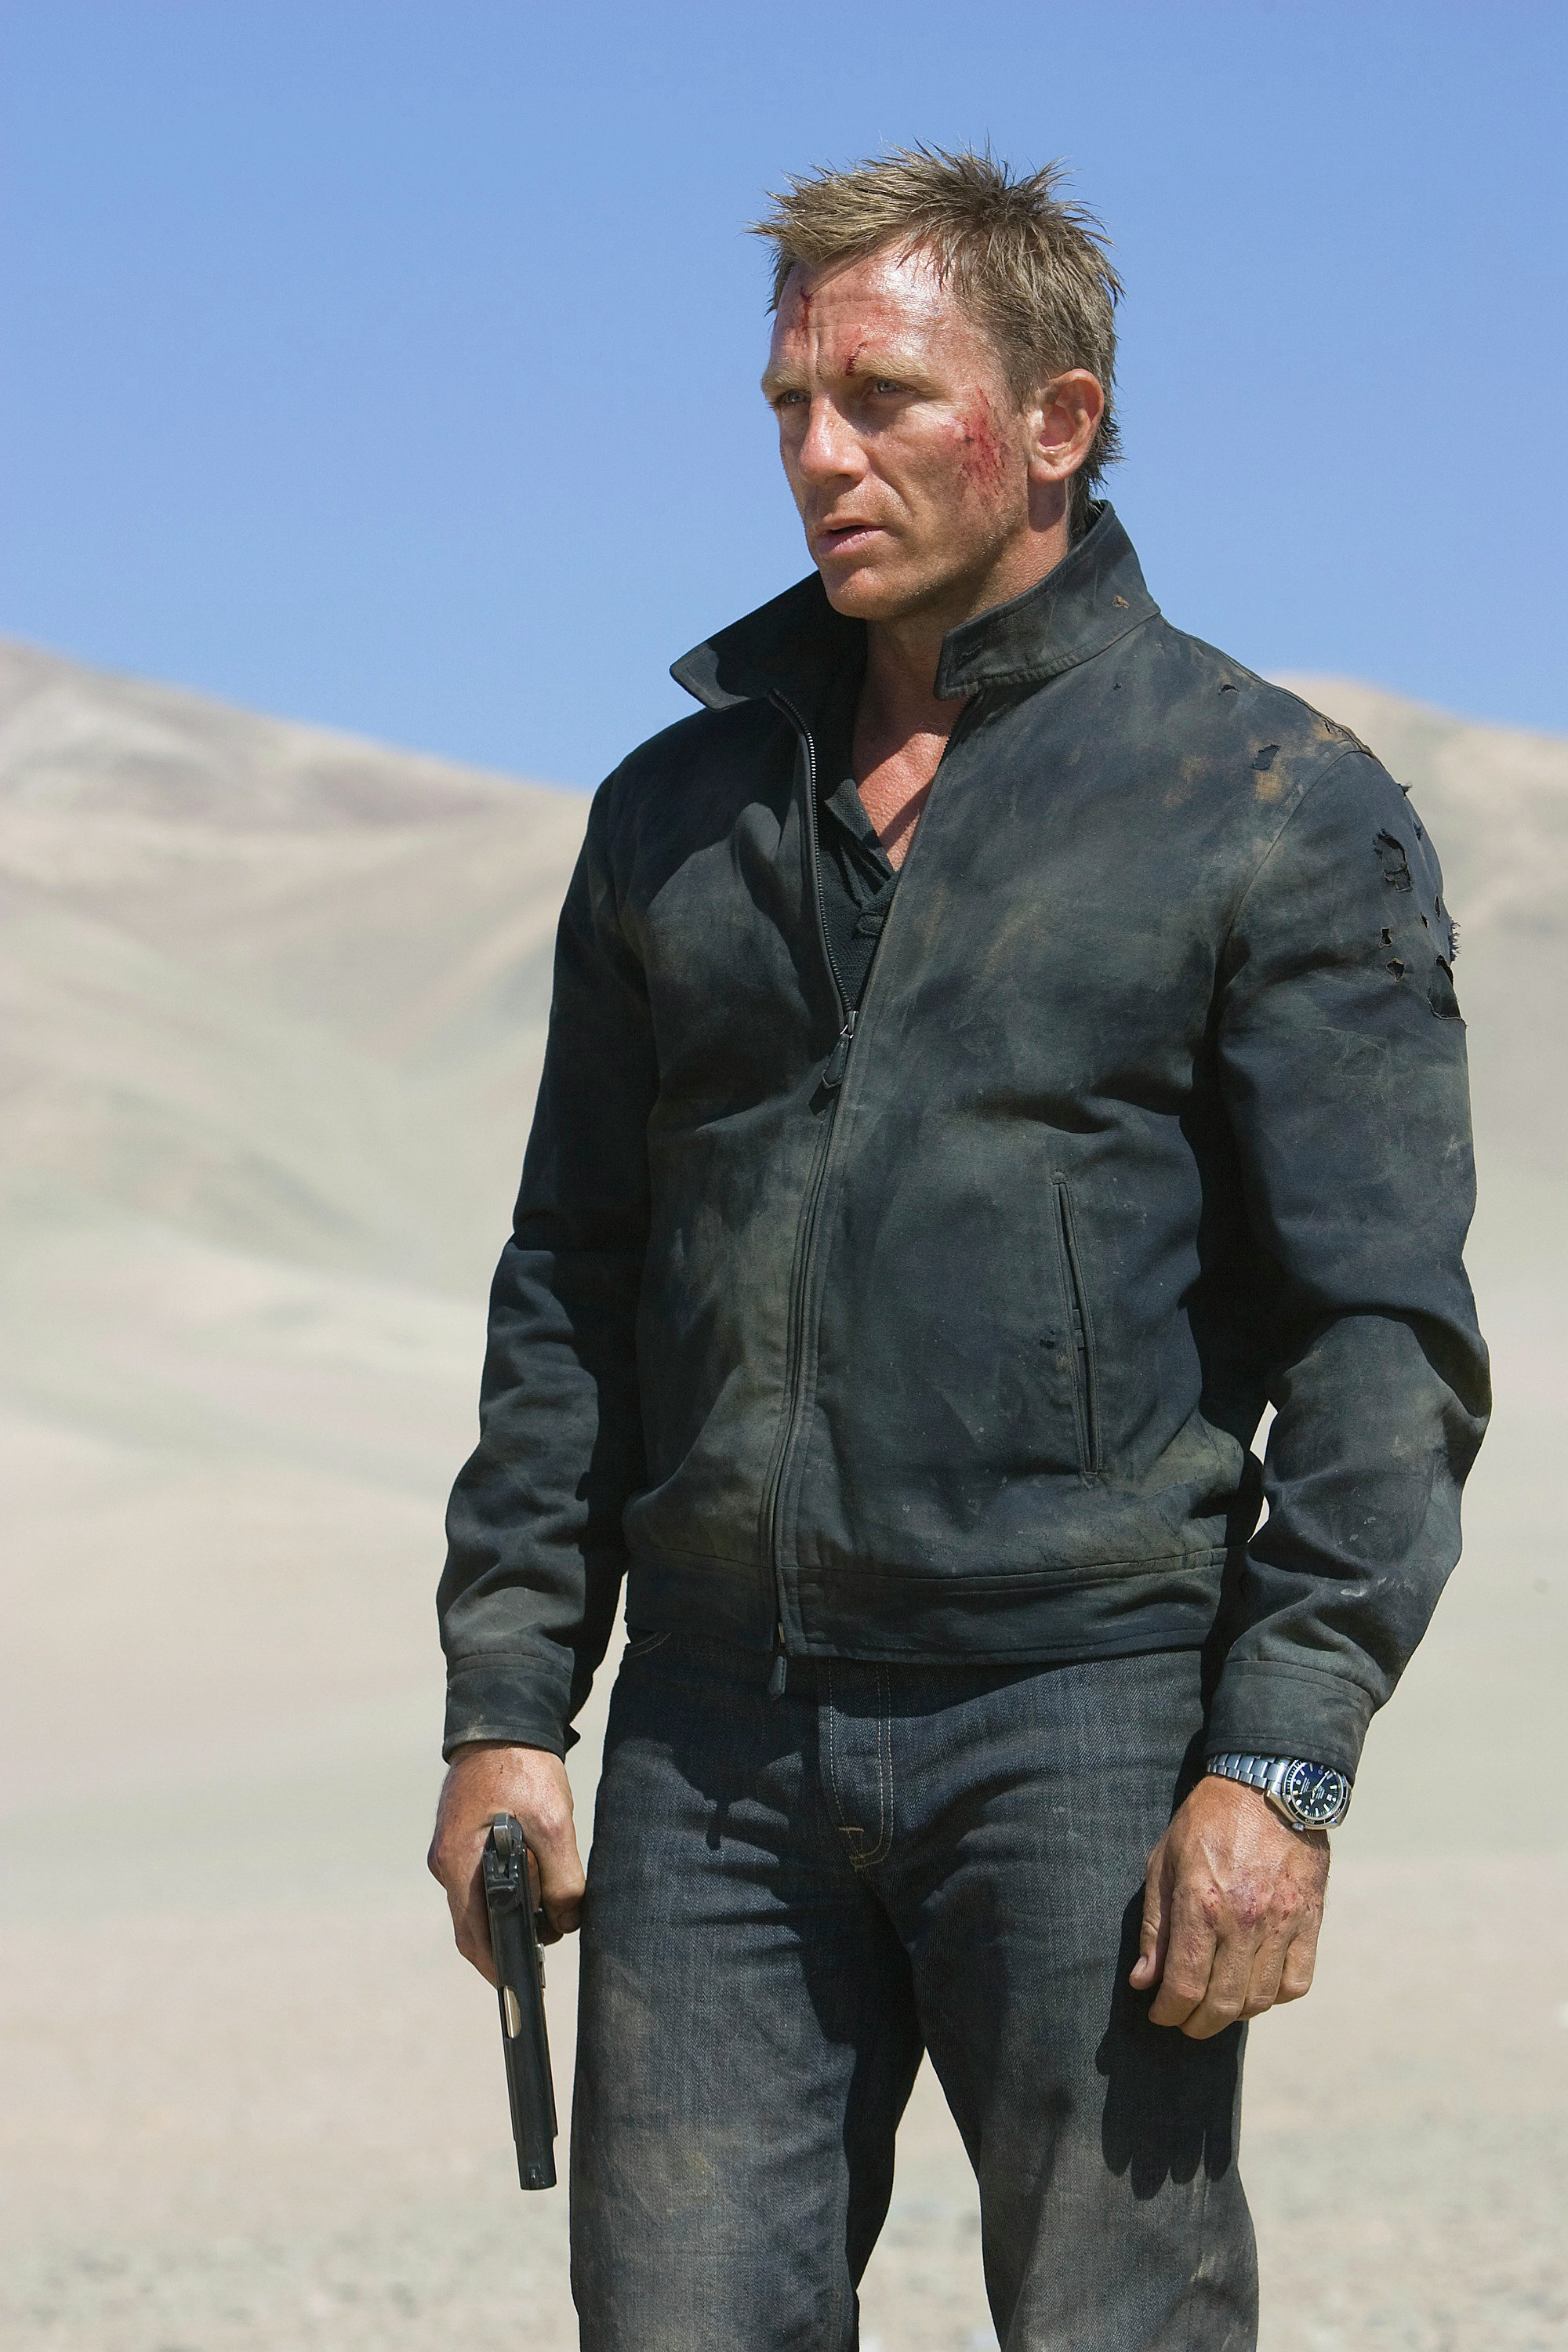 In this file image released by Sony Pictures, Daniel Craig stars as James Bond 007 in a scene from Quantum of Solace.